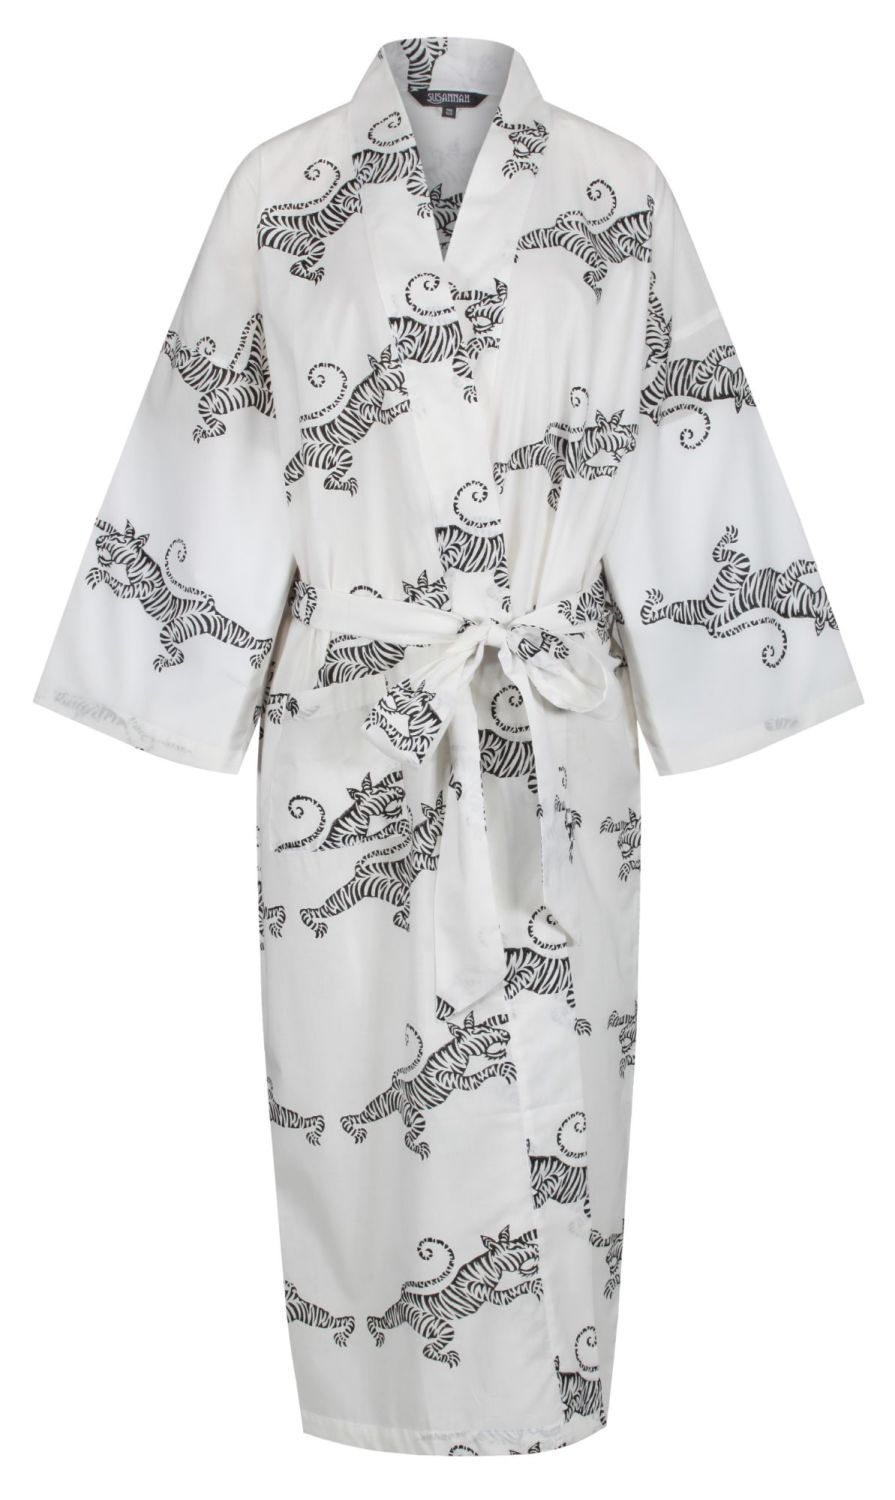 <b>JUST IN! (awaiting photos) Women's Cotton Dressing Gown Kimono - Tigers